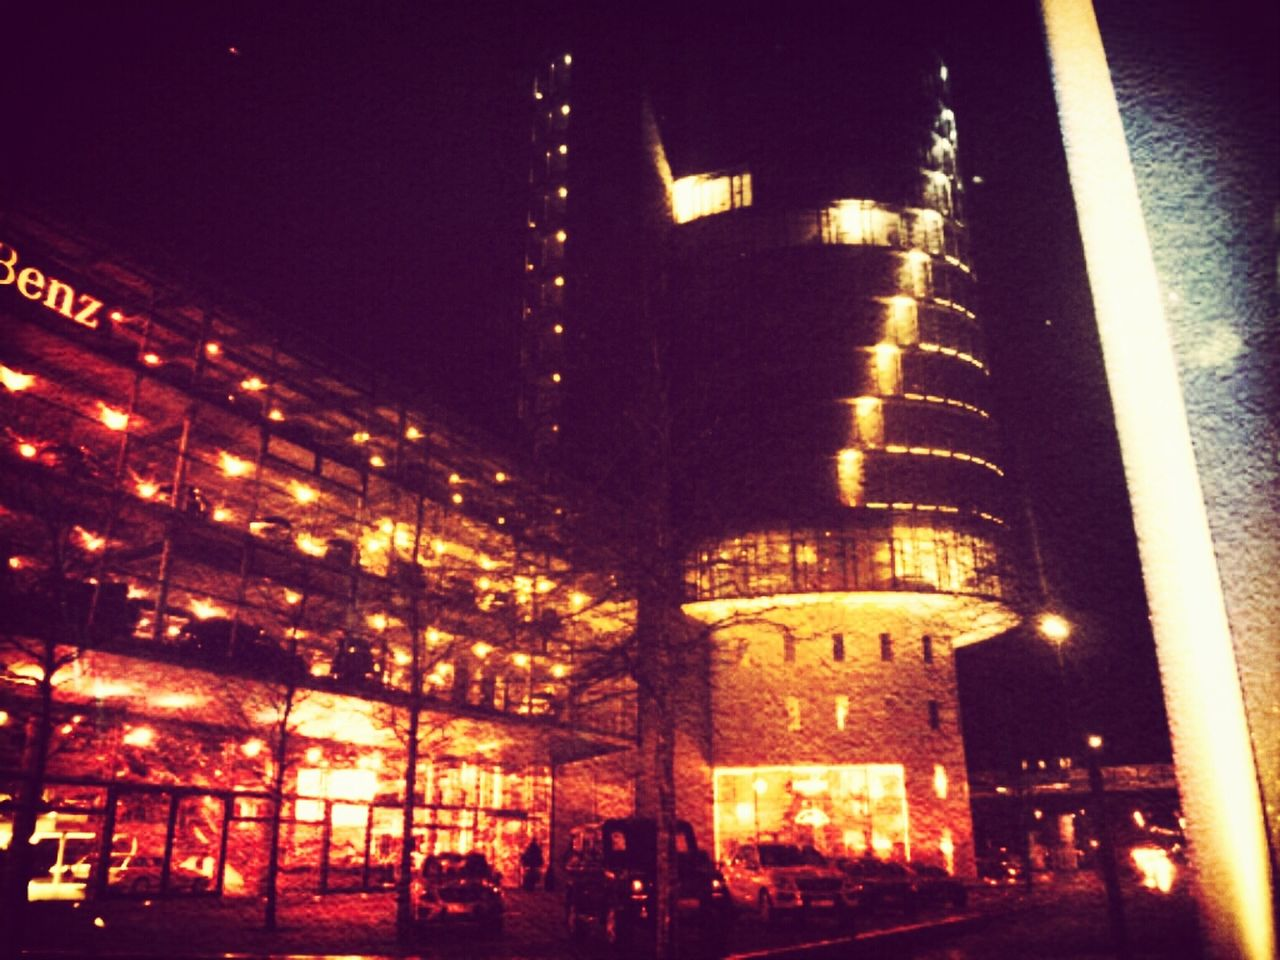 illuminated, architecture, night, built structure, building exterior, travel destinations, no people, city, outdoors, sky